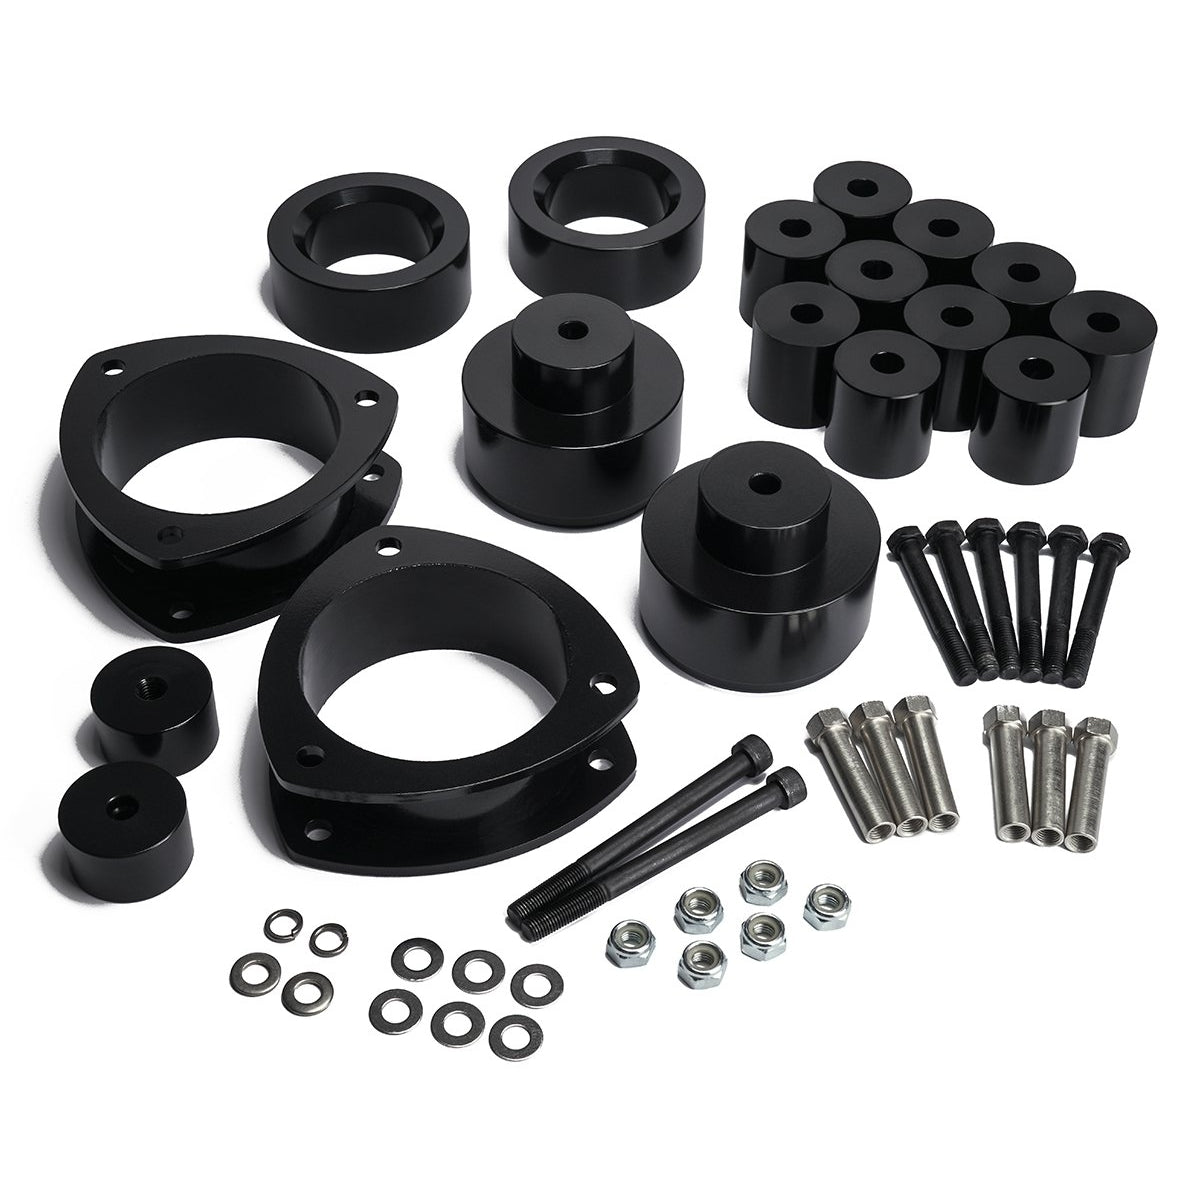 1999-2005 Chevy Tracker Full Lift Kit with Bump Stops